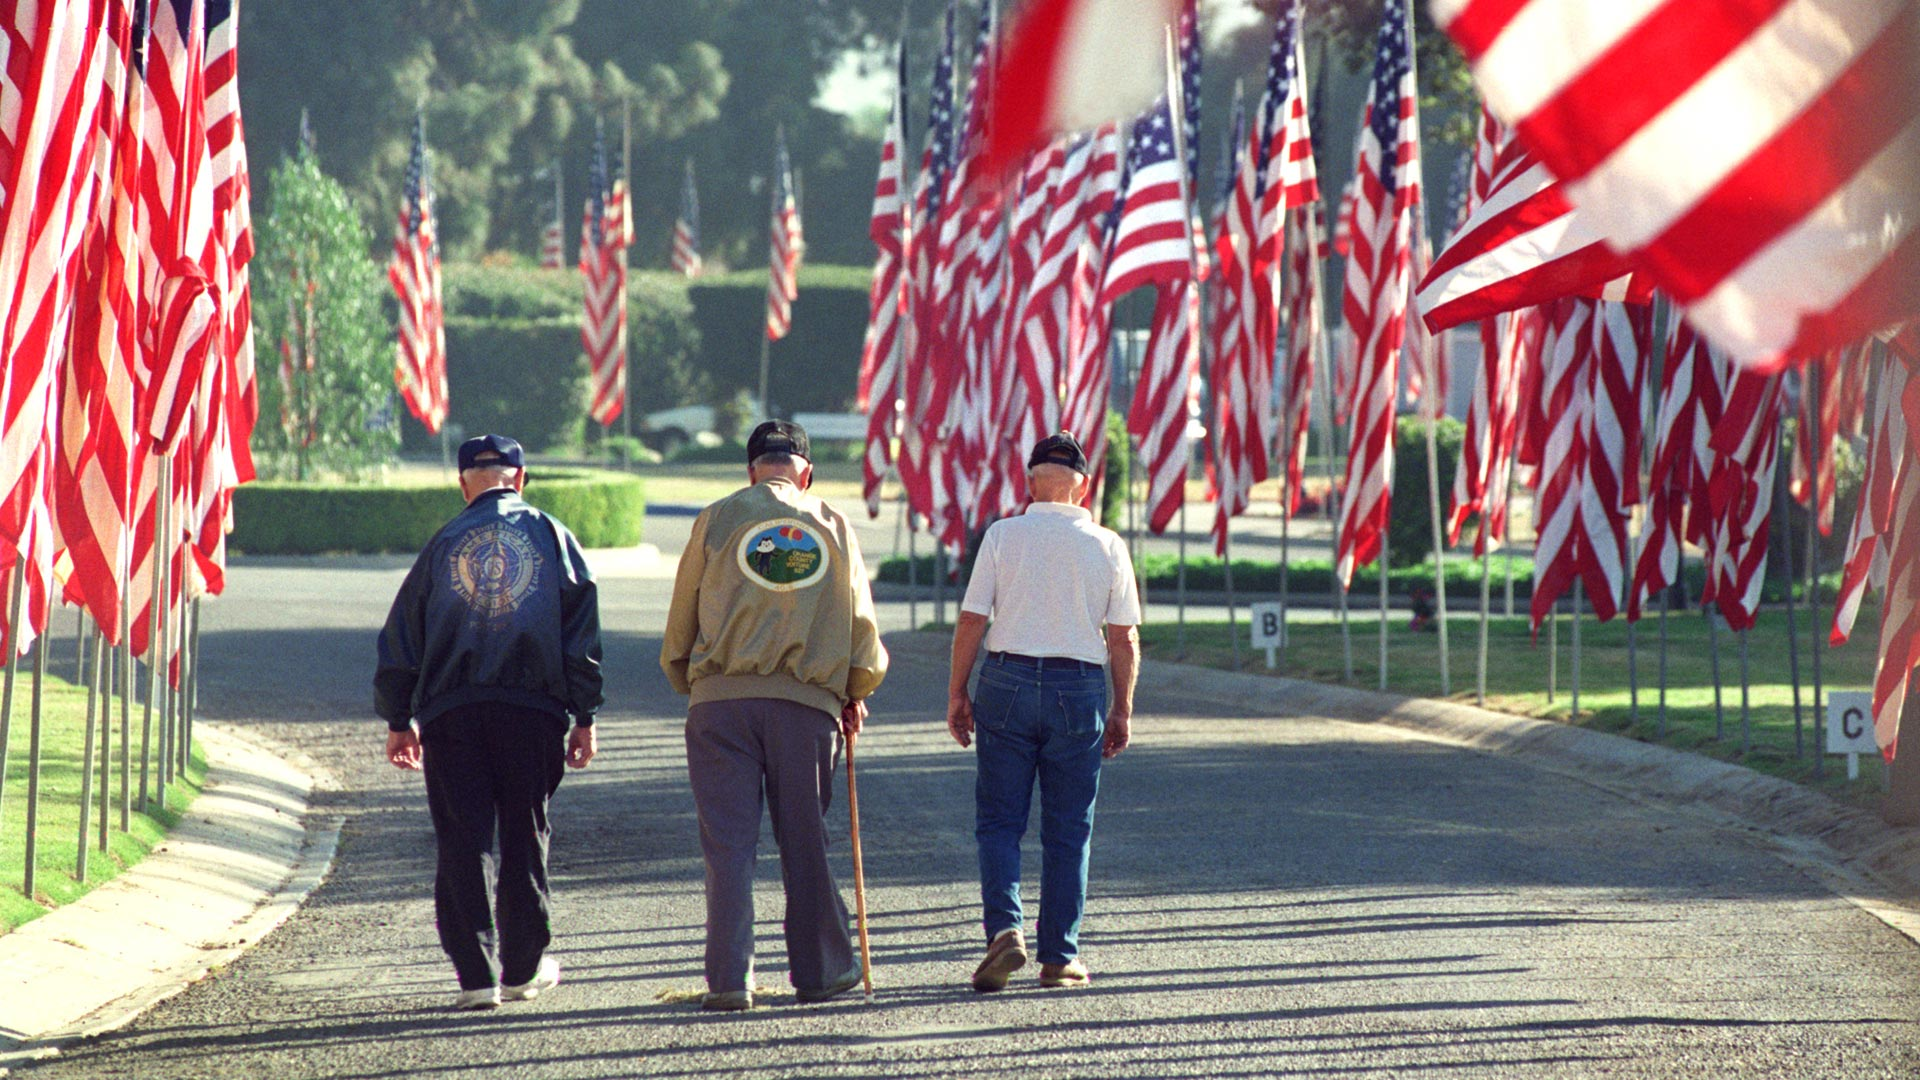 Veterans with flags